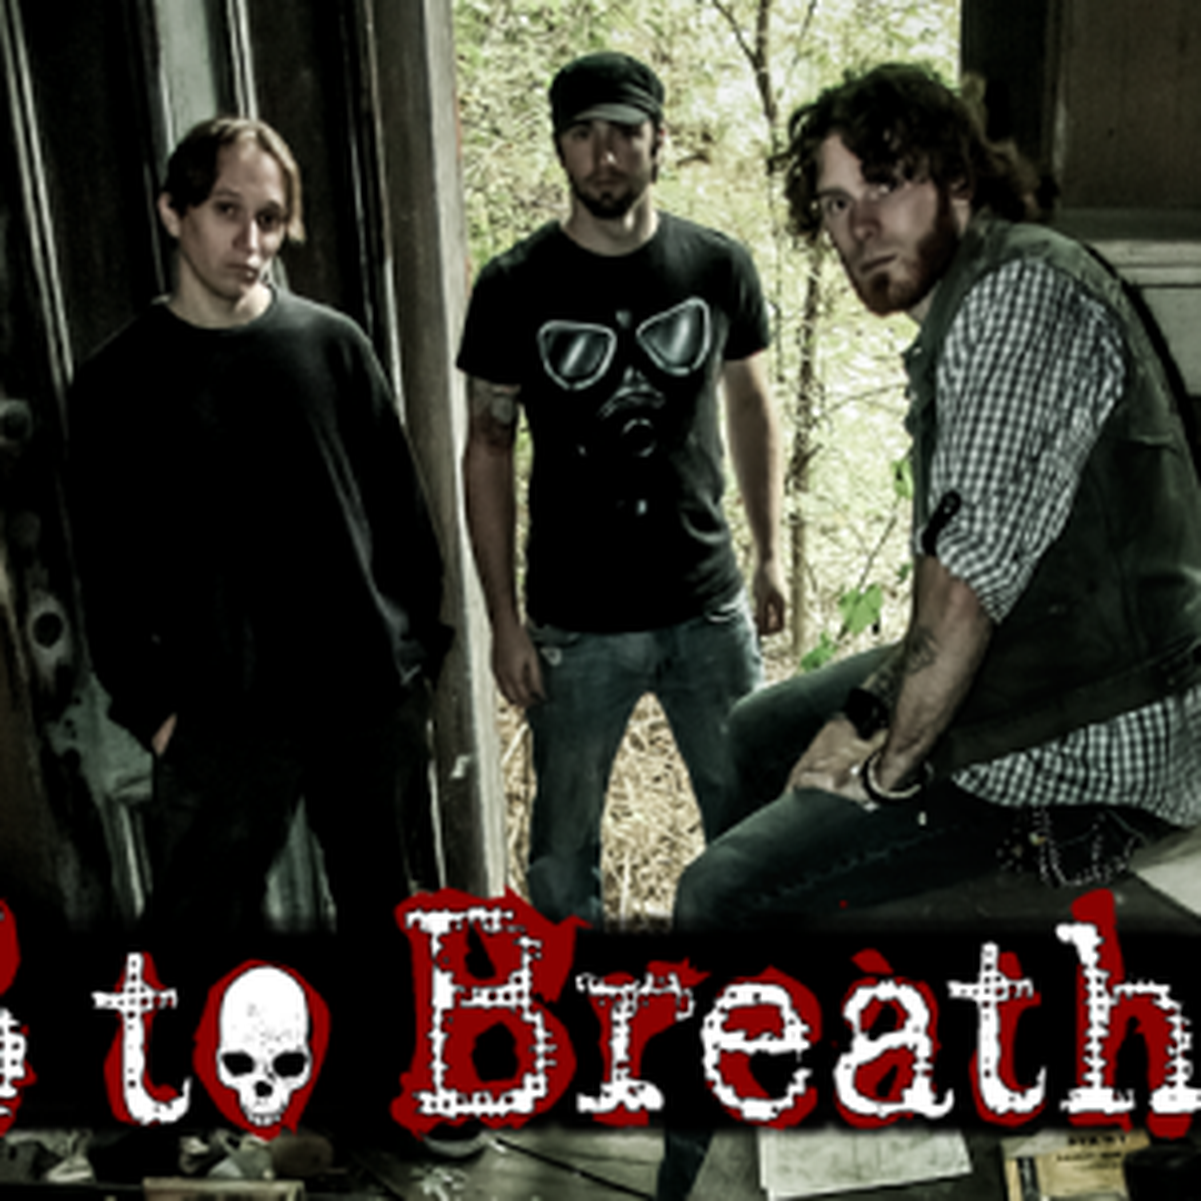 3 to Breathe wiki, 3 to Breathe review, 3 to Breathe history, 3 to Breathe news